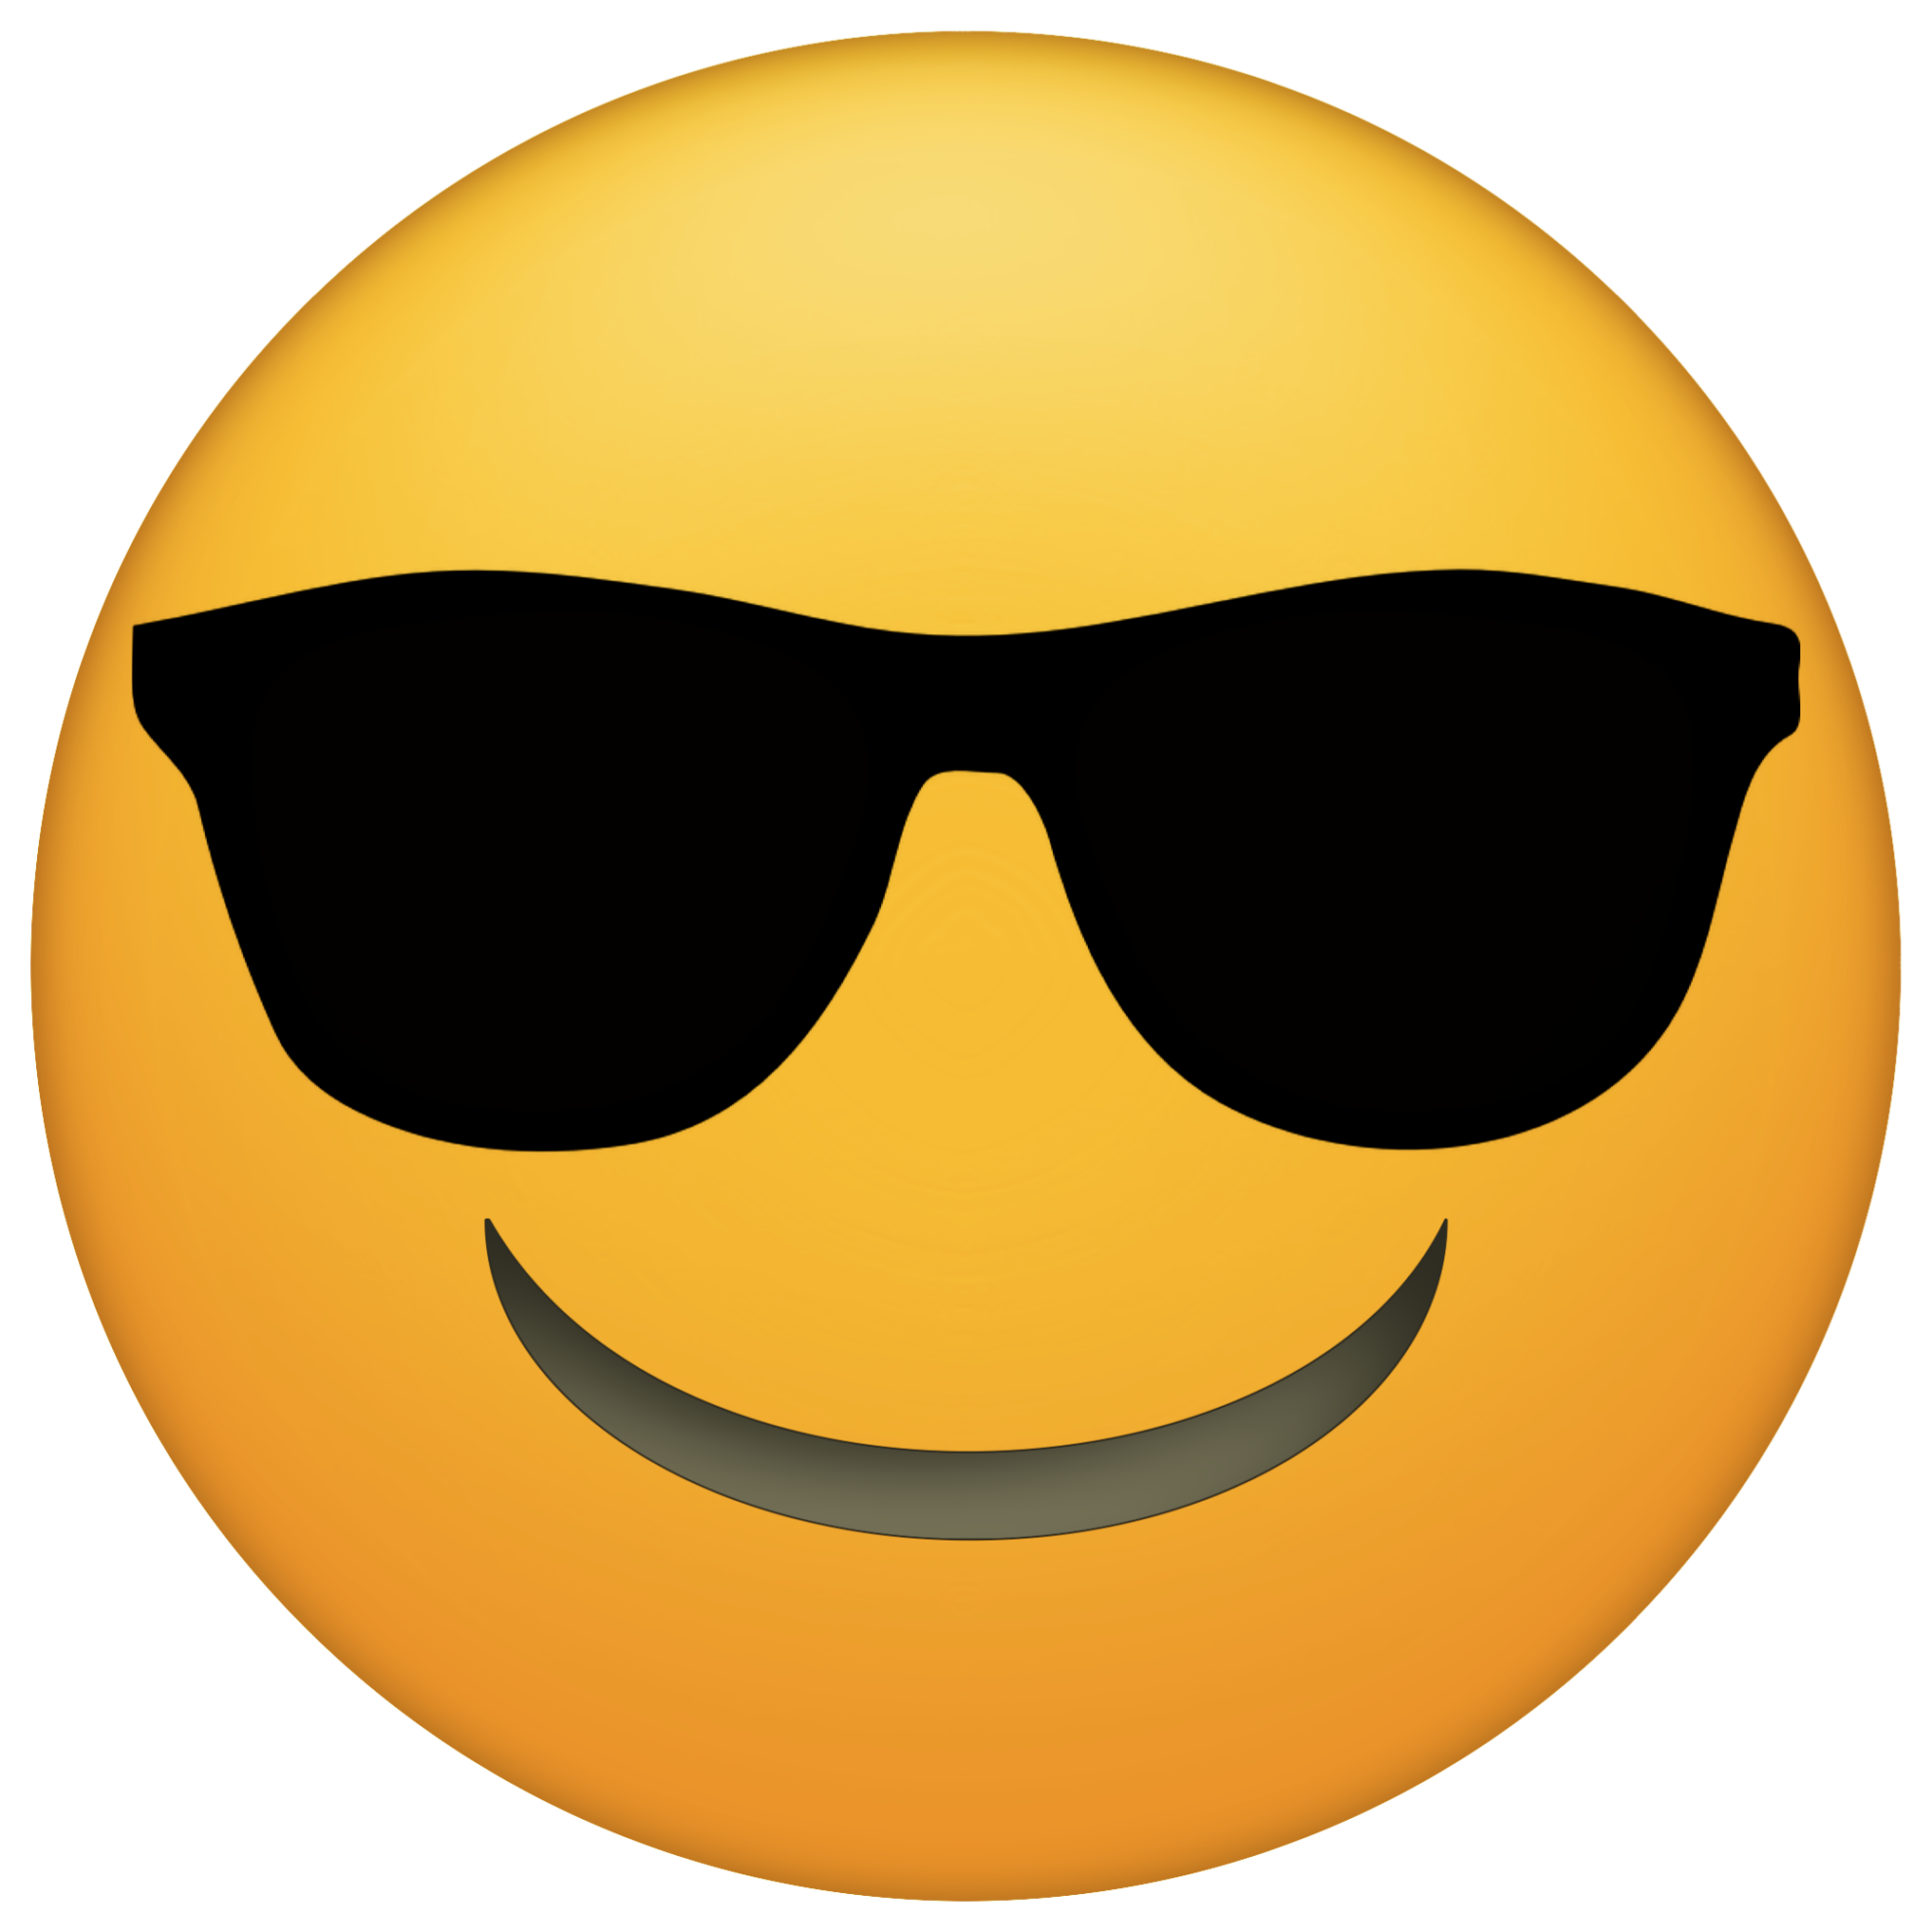 www.papertraildesign.com wp-content uploads 2017 06 emoji ... - Smiley Face with Shades